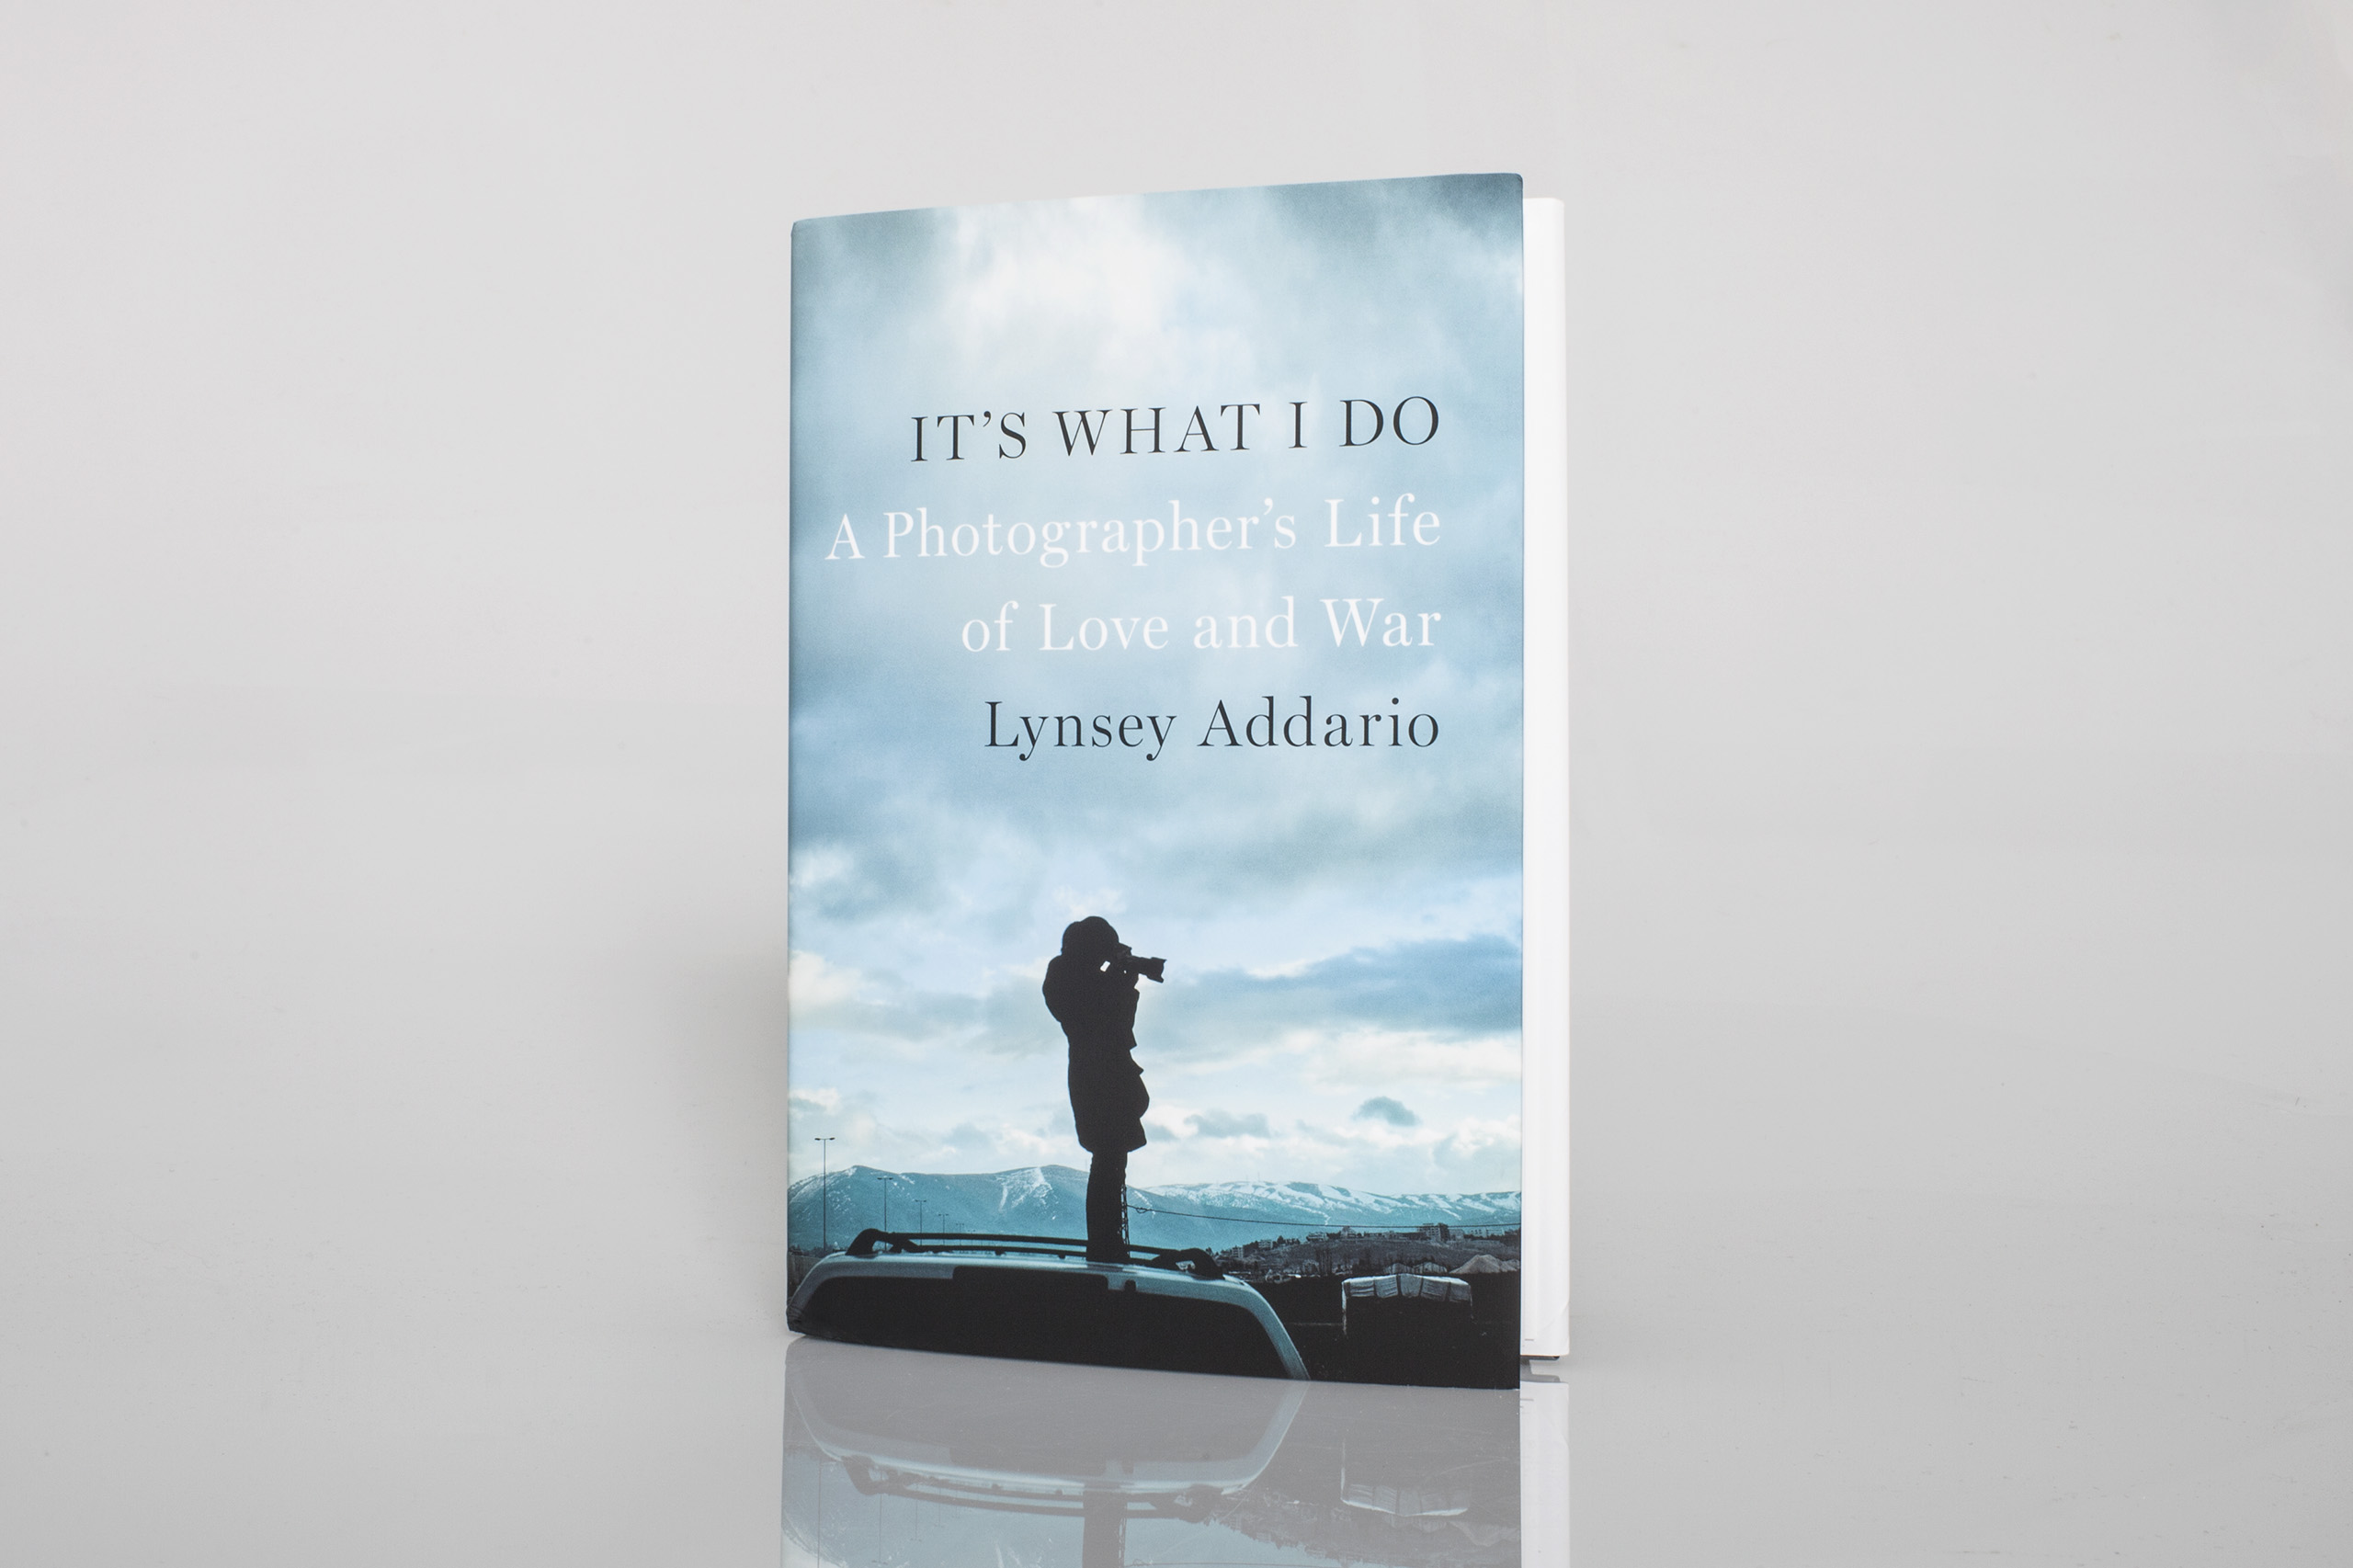 It's What I Do  by Lynsey AddarioPublished by Penguin